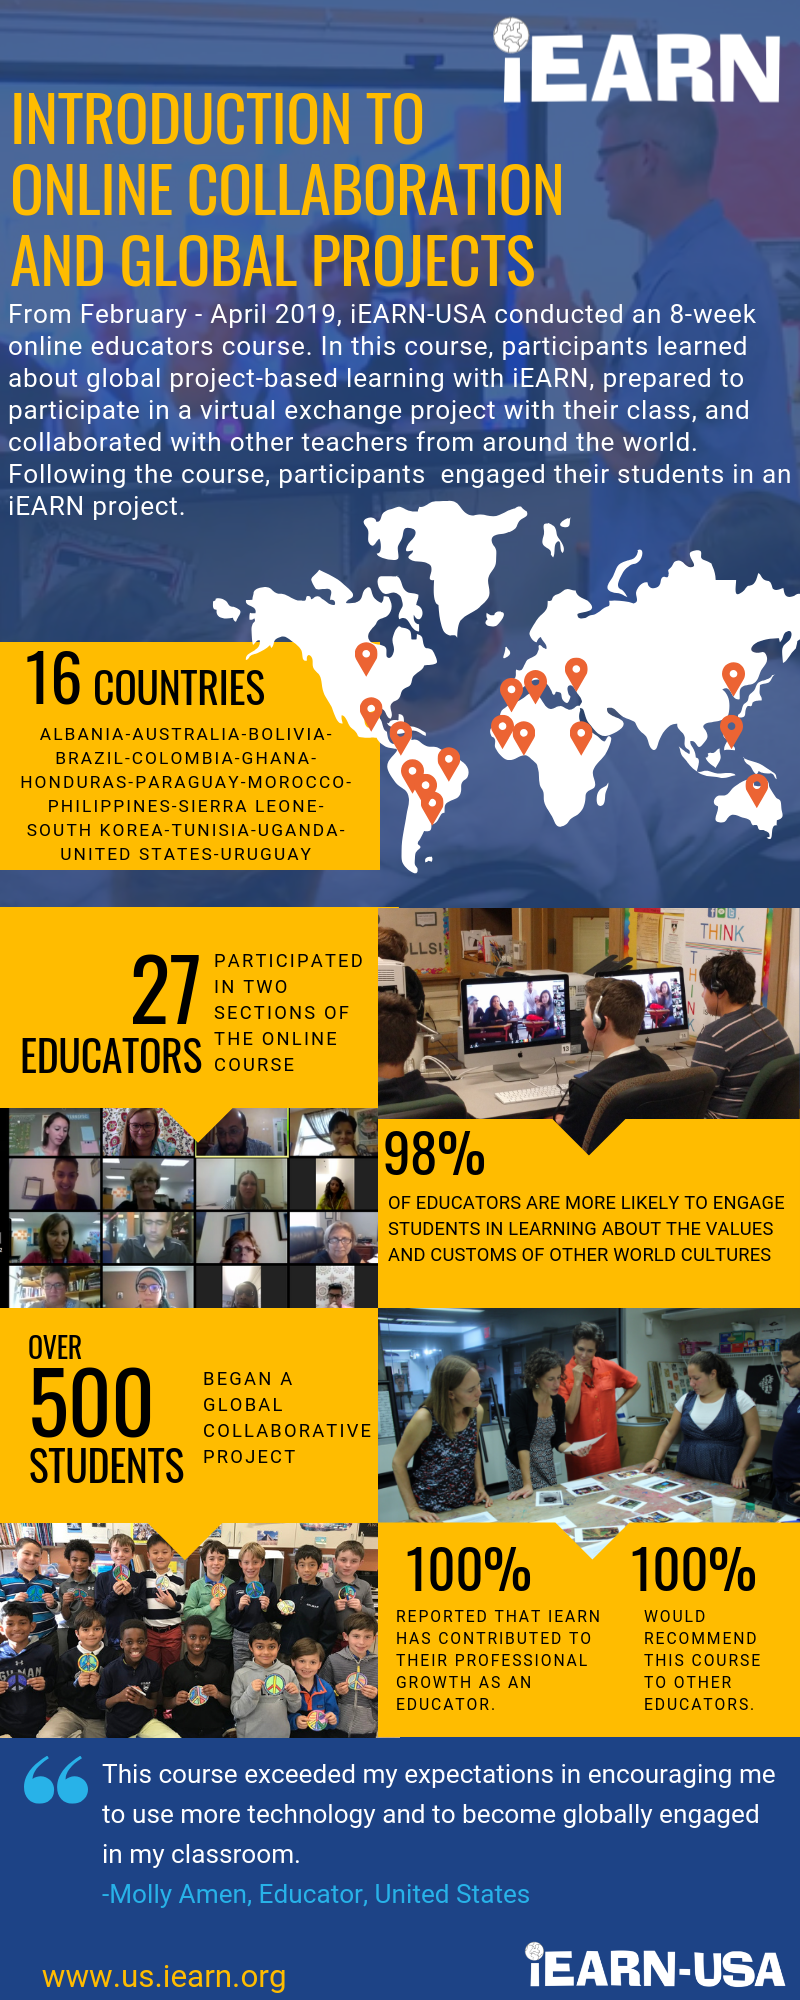 Spring 2019 Online Course Infographic